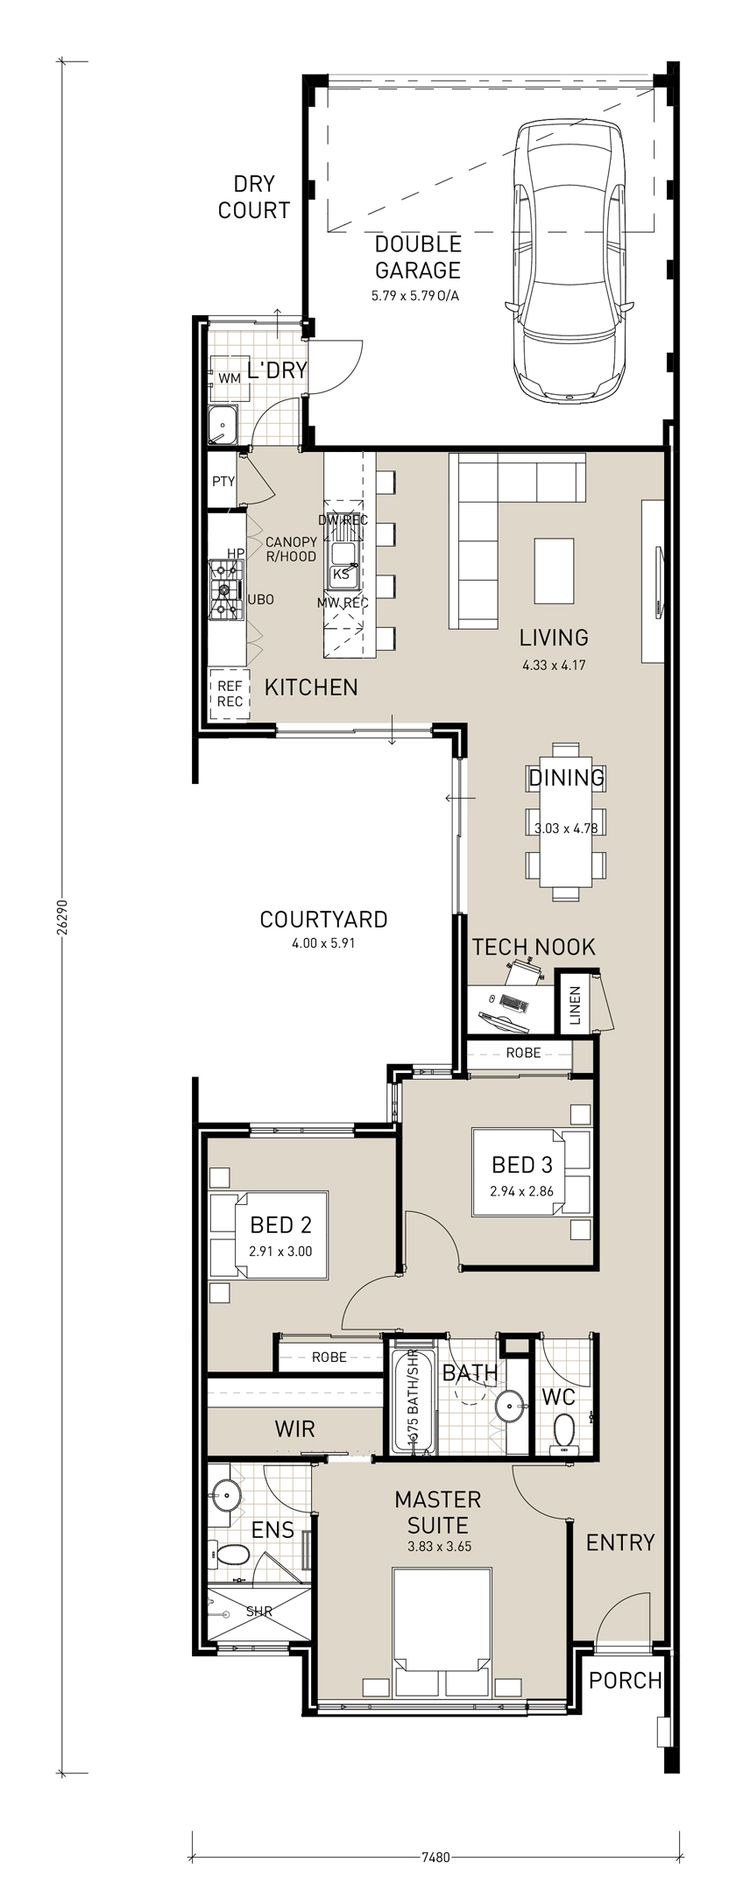 beautiful long skinny house plans contemporary 3d house designs centro premium narrow lot plans pinterest ranges and display